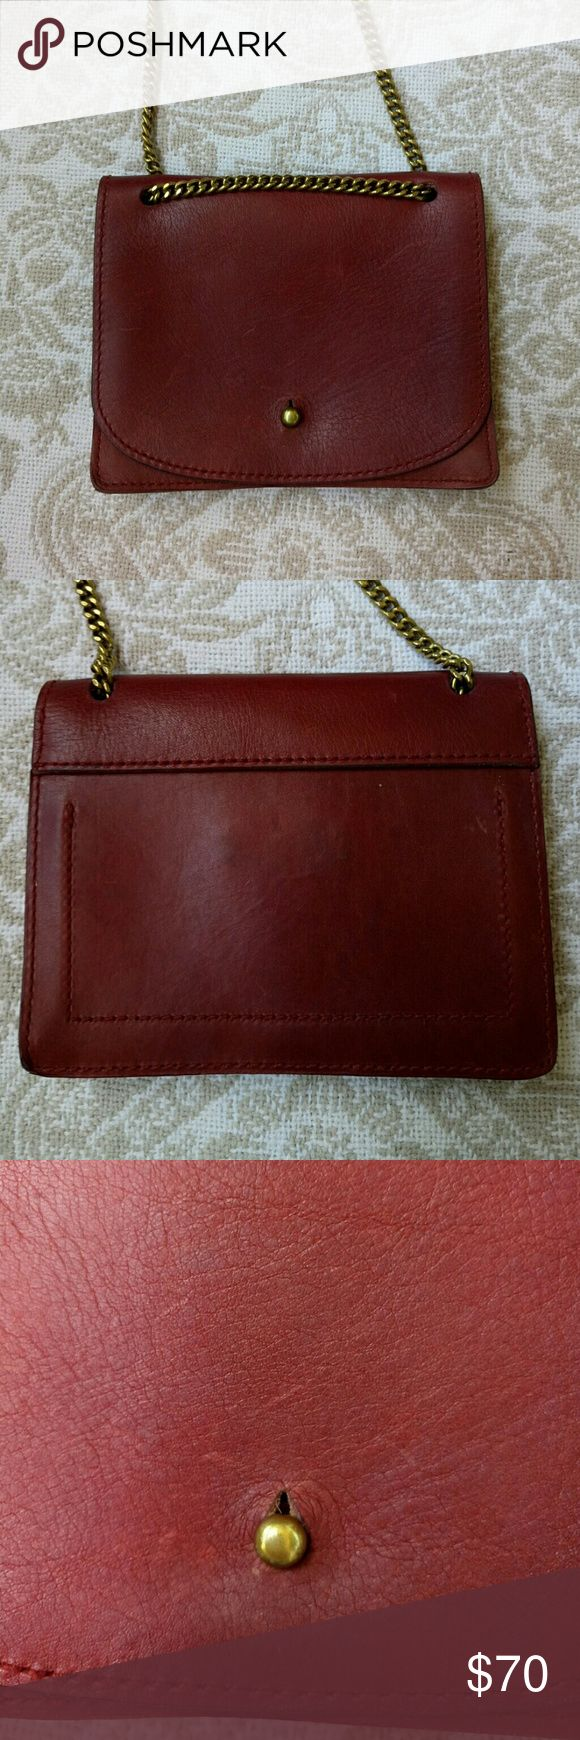 🆕 Madewell Crossbody Sold out online gorgeous reddish brown madewell crossbody with a brass chain strap. Has three pockets inside. Would be perfect for a night out. Has a couple small darker spots on the backside that are barely noticeable. This bag is going to age beautifully. Length 6.5 height 5 width 1.5 Madewell Bags Crossbody Bags